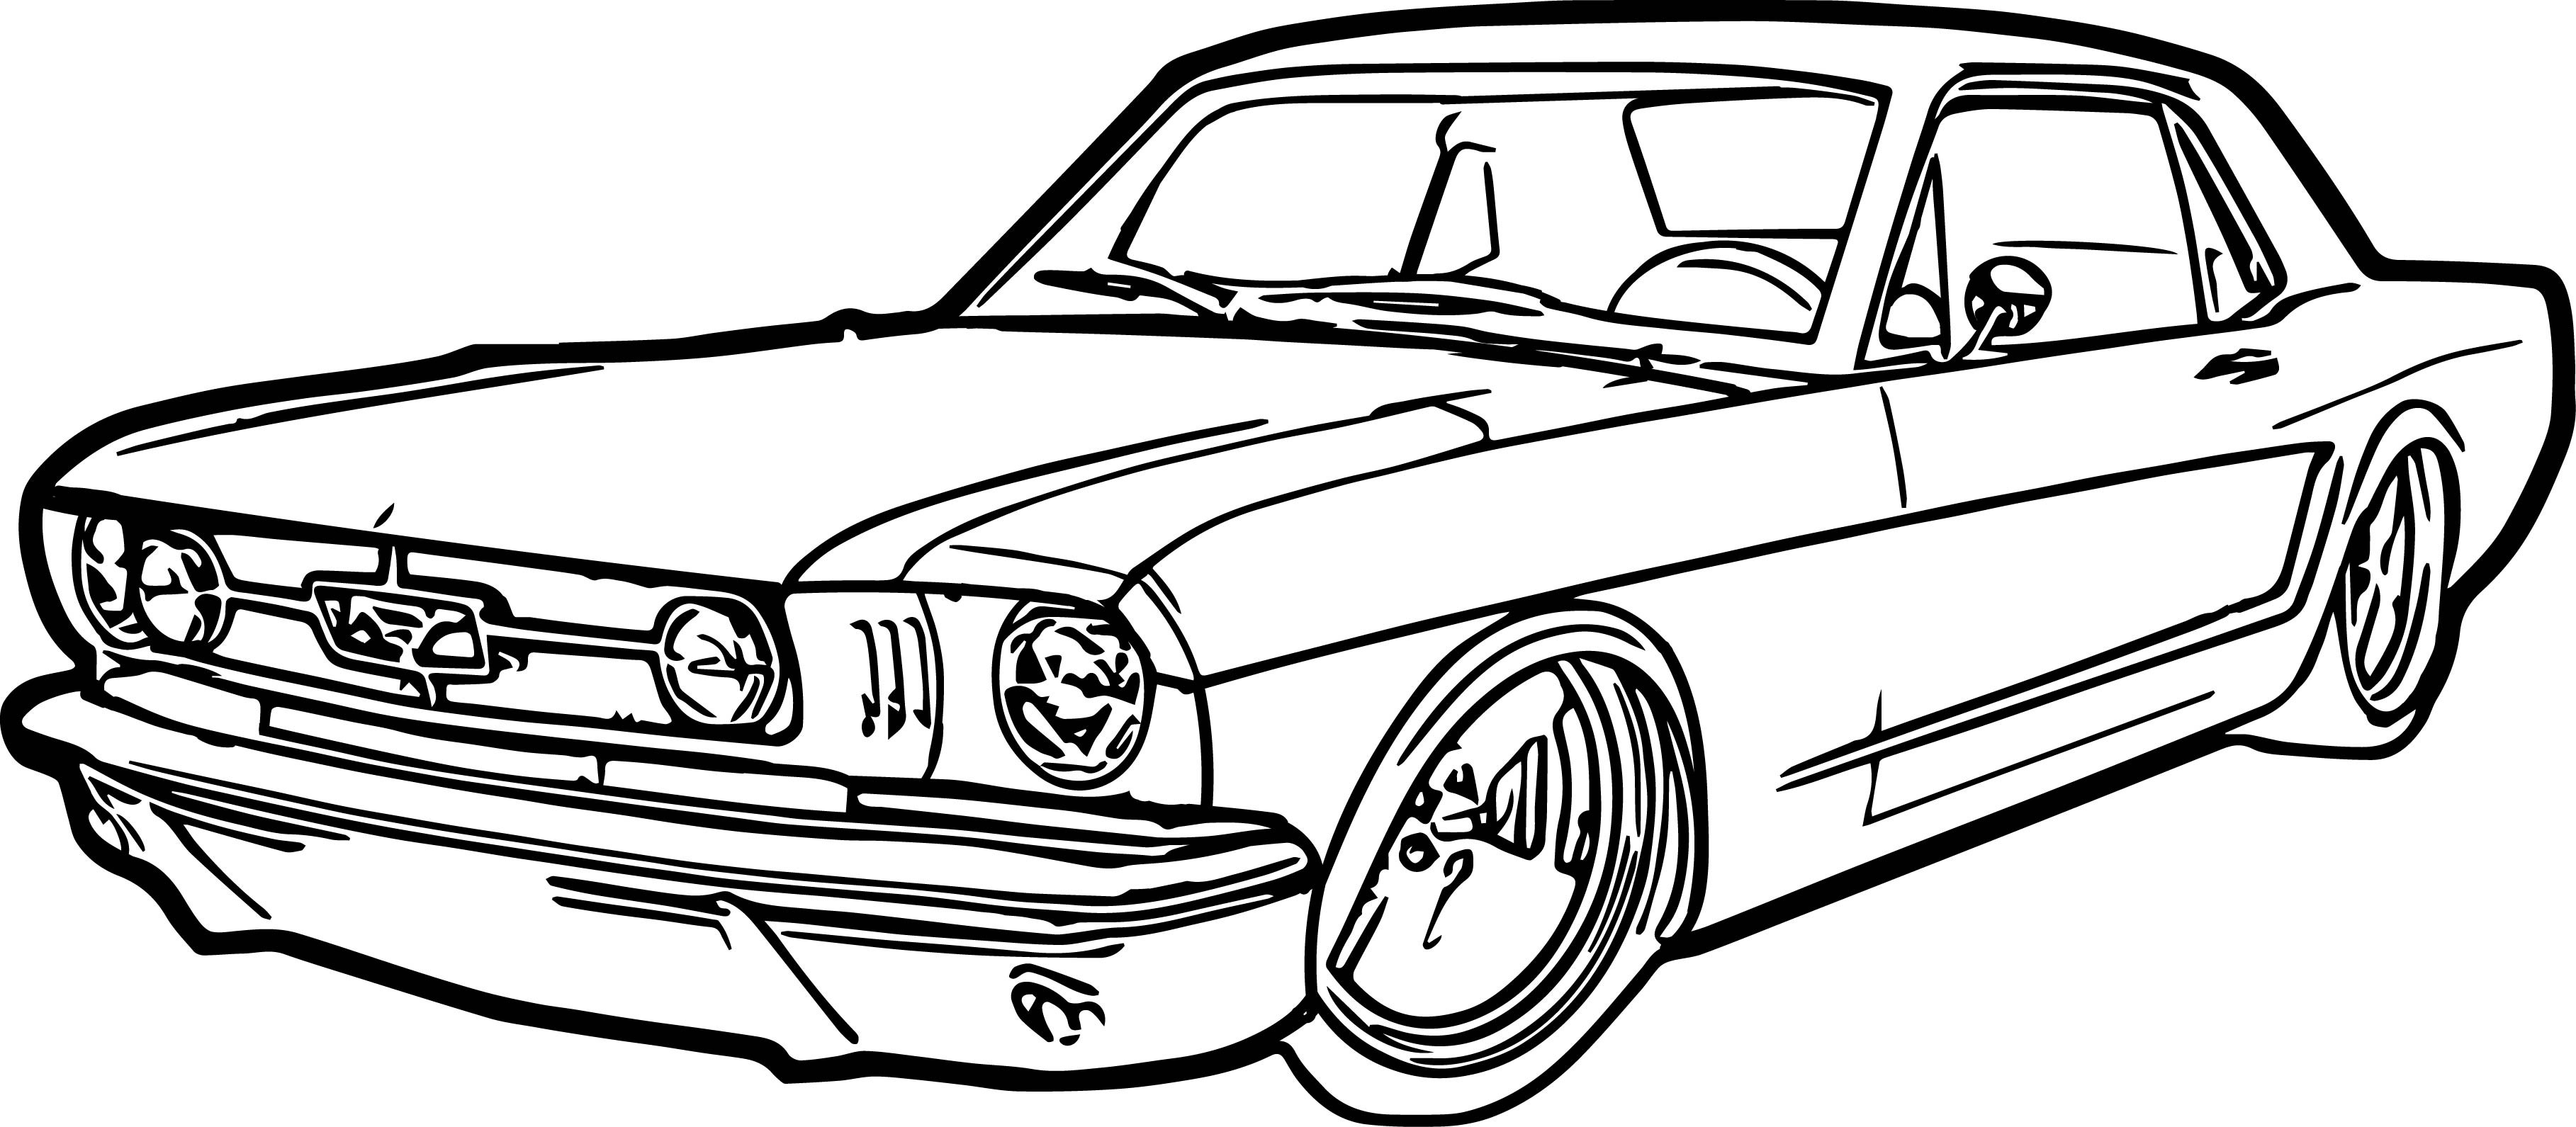 3635x1591 Car Coloring Pages